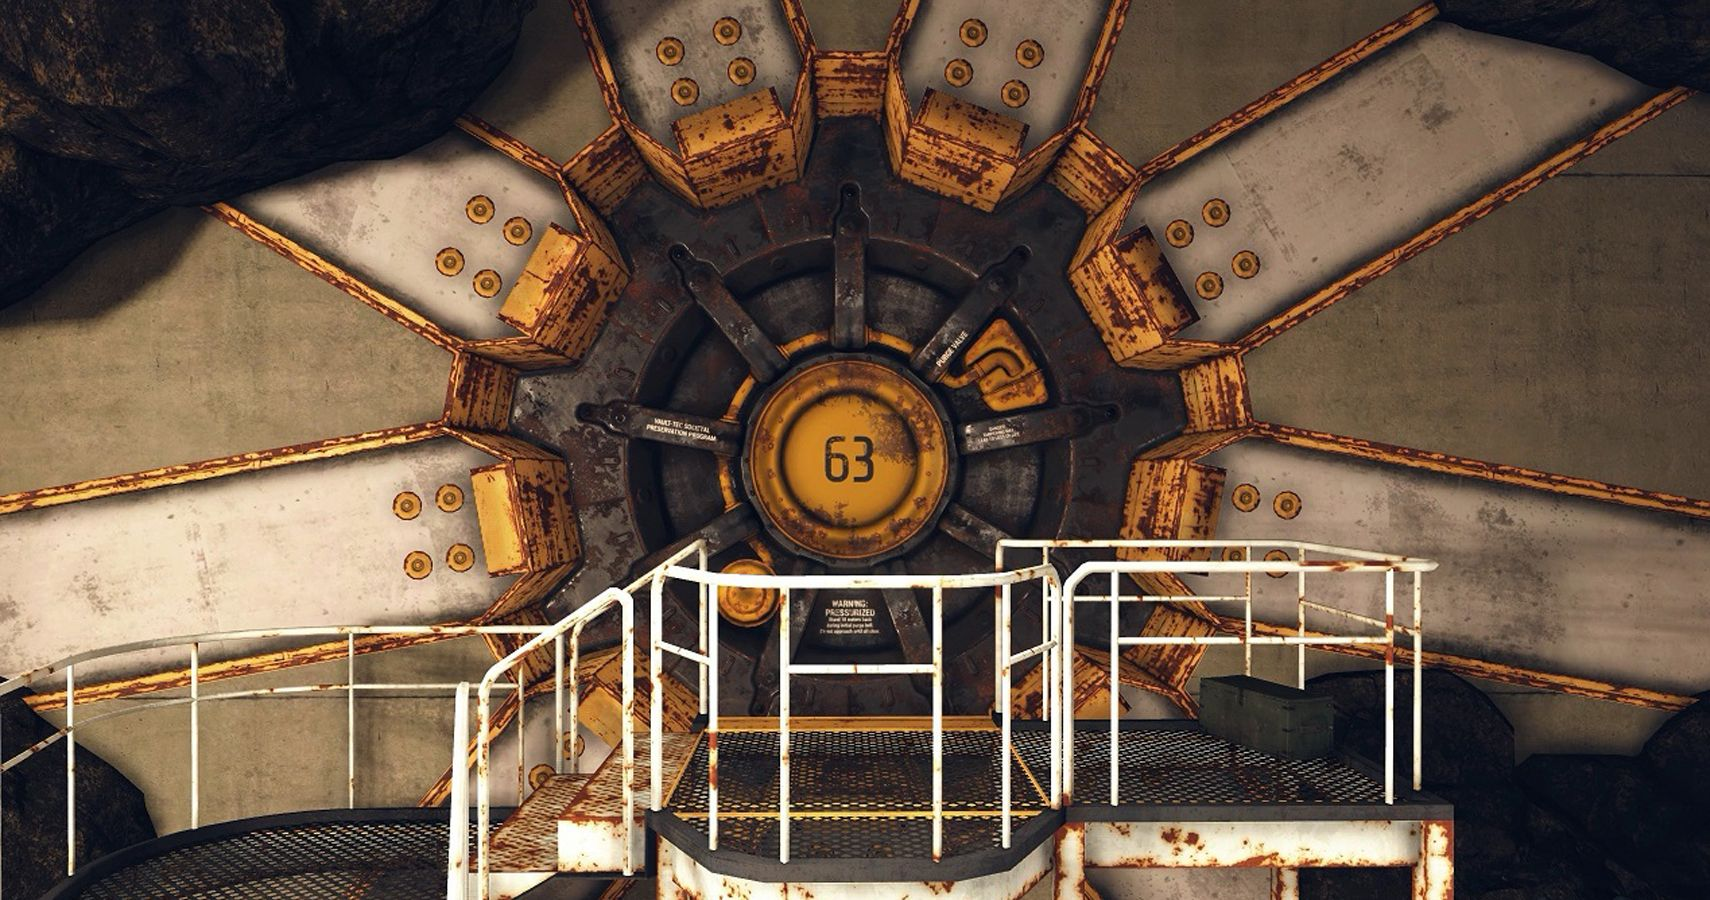 Fallout 76 Players Find Secret Vaults By - You Guessed It